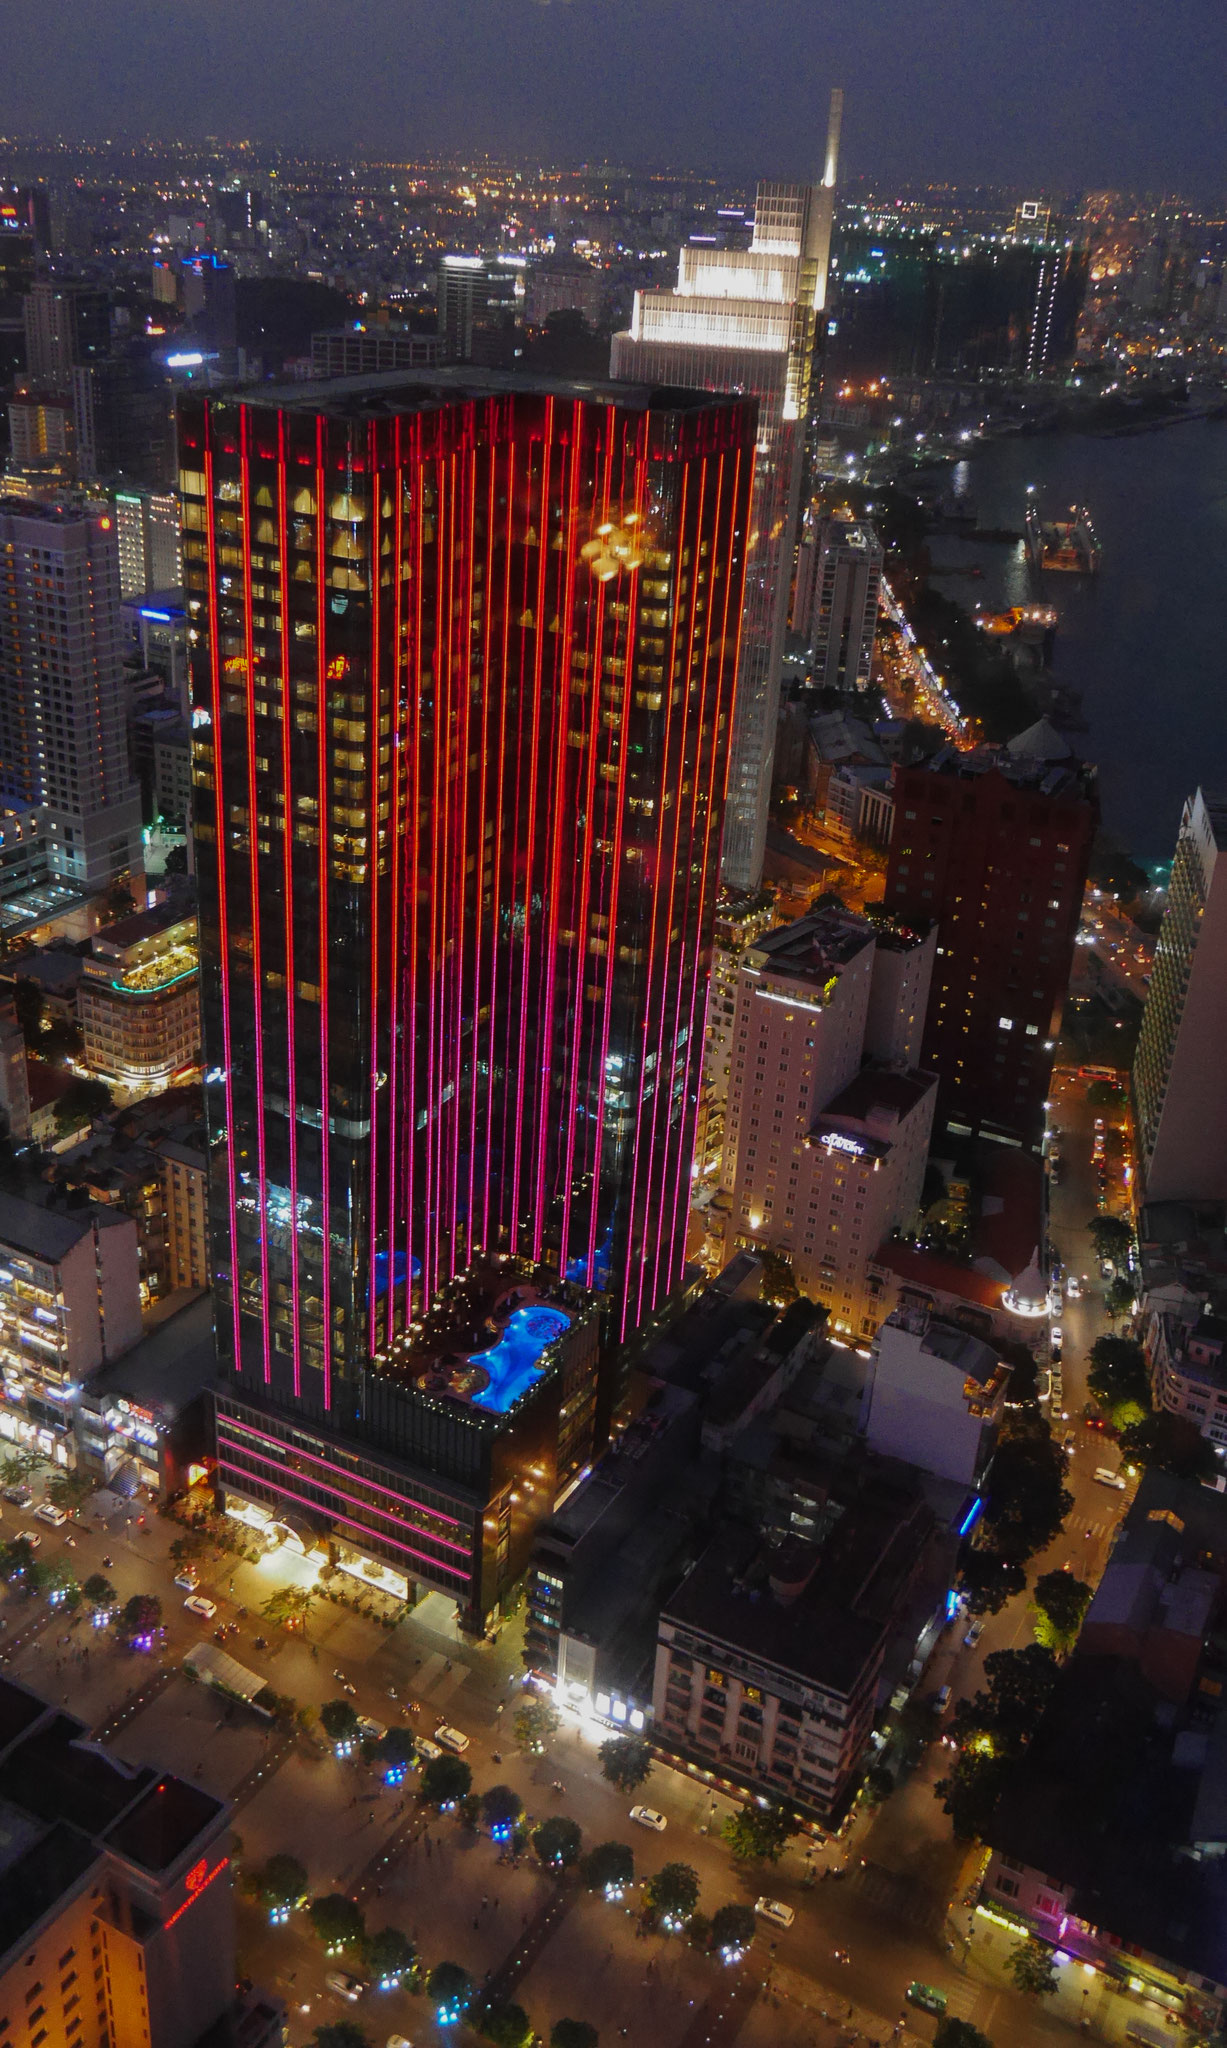 Bitexco Financial Tower - Saigon Skydeck